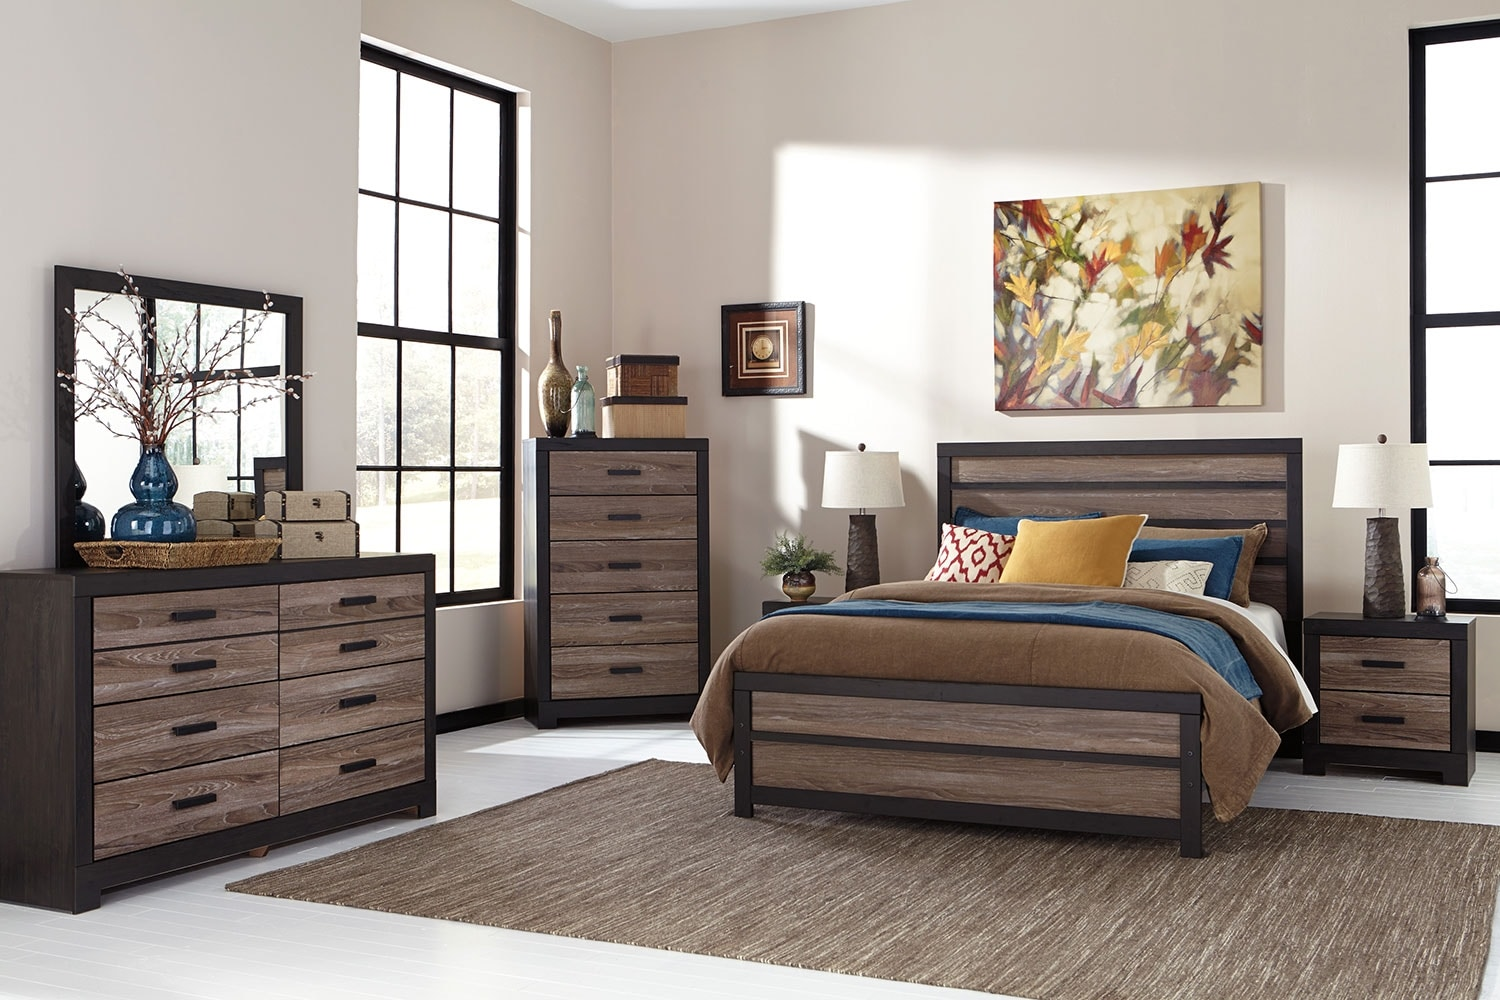 Bedroom Furniture - Harlinton 8-Piece King Bedroom Package